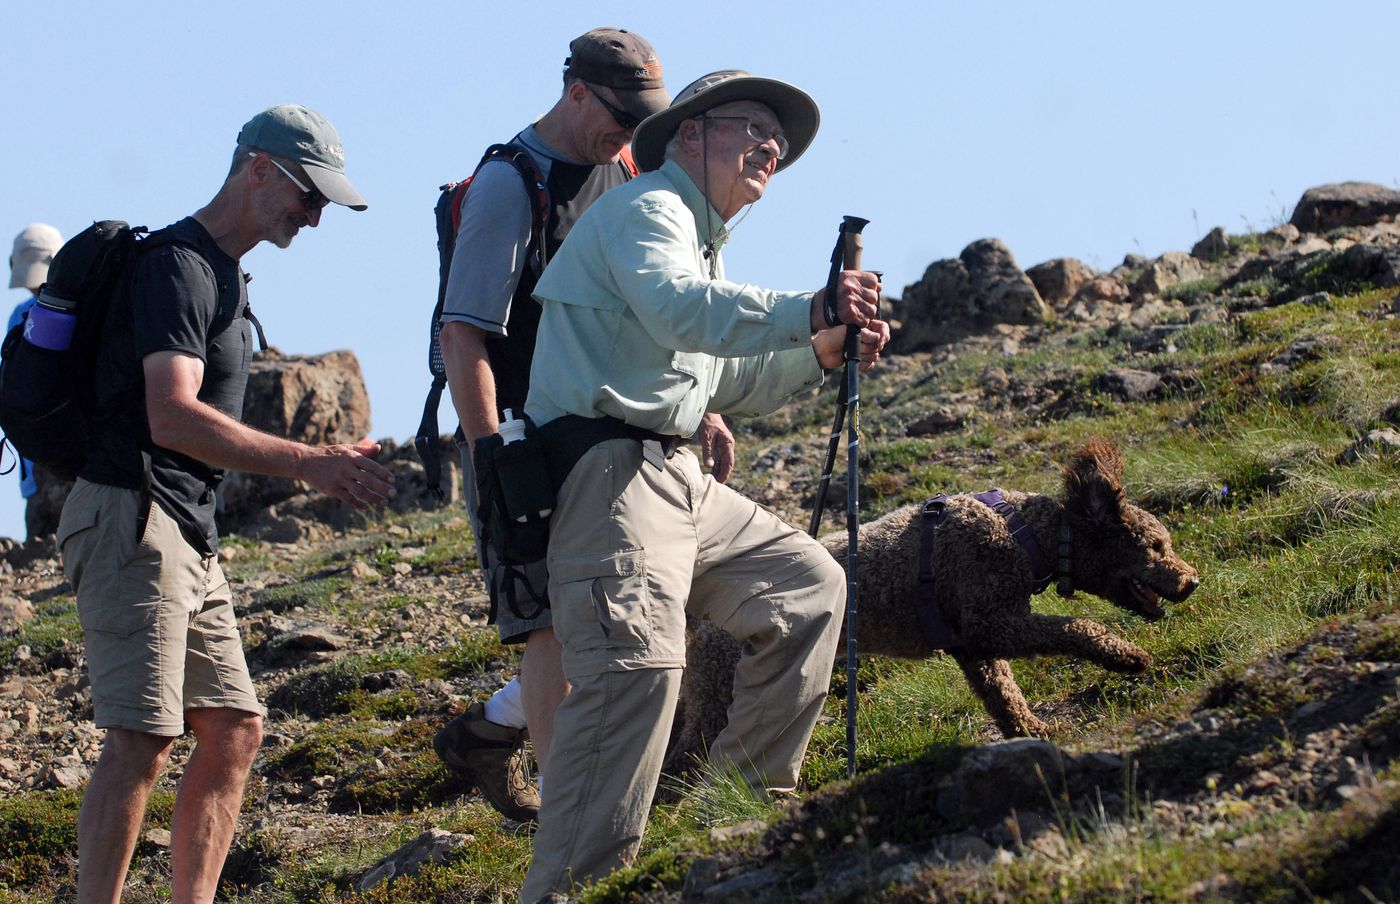 Doug Wooliver, left, and Steve Wooliver hike alongside their father, George Wooliver, near the top of Flattop Mountain in Chugach State Park on Friday, July 5, 2019. (Matt Tunseth / ADN)